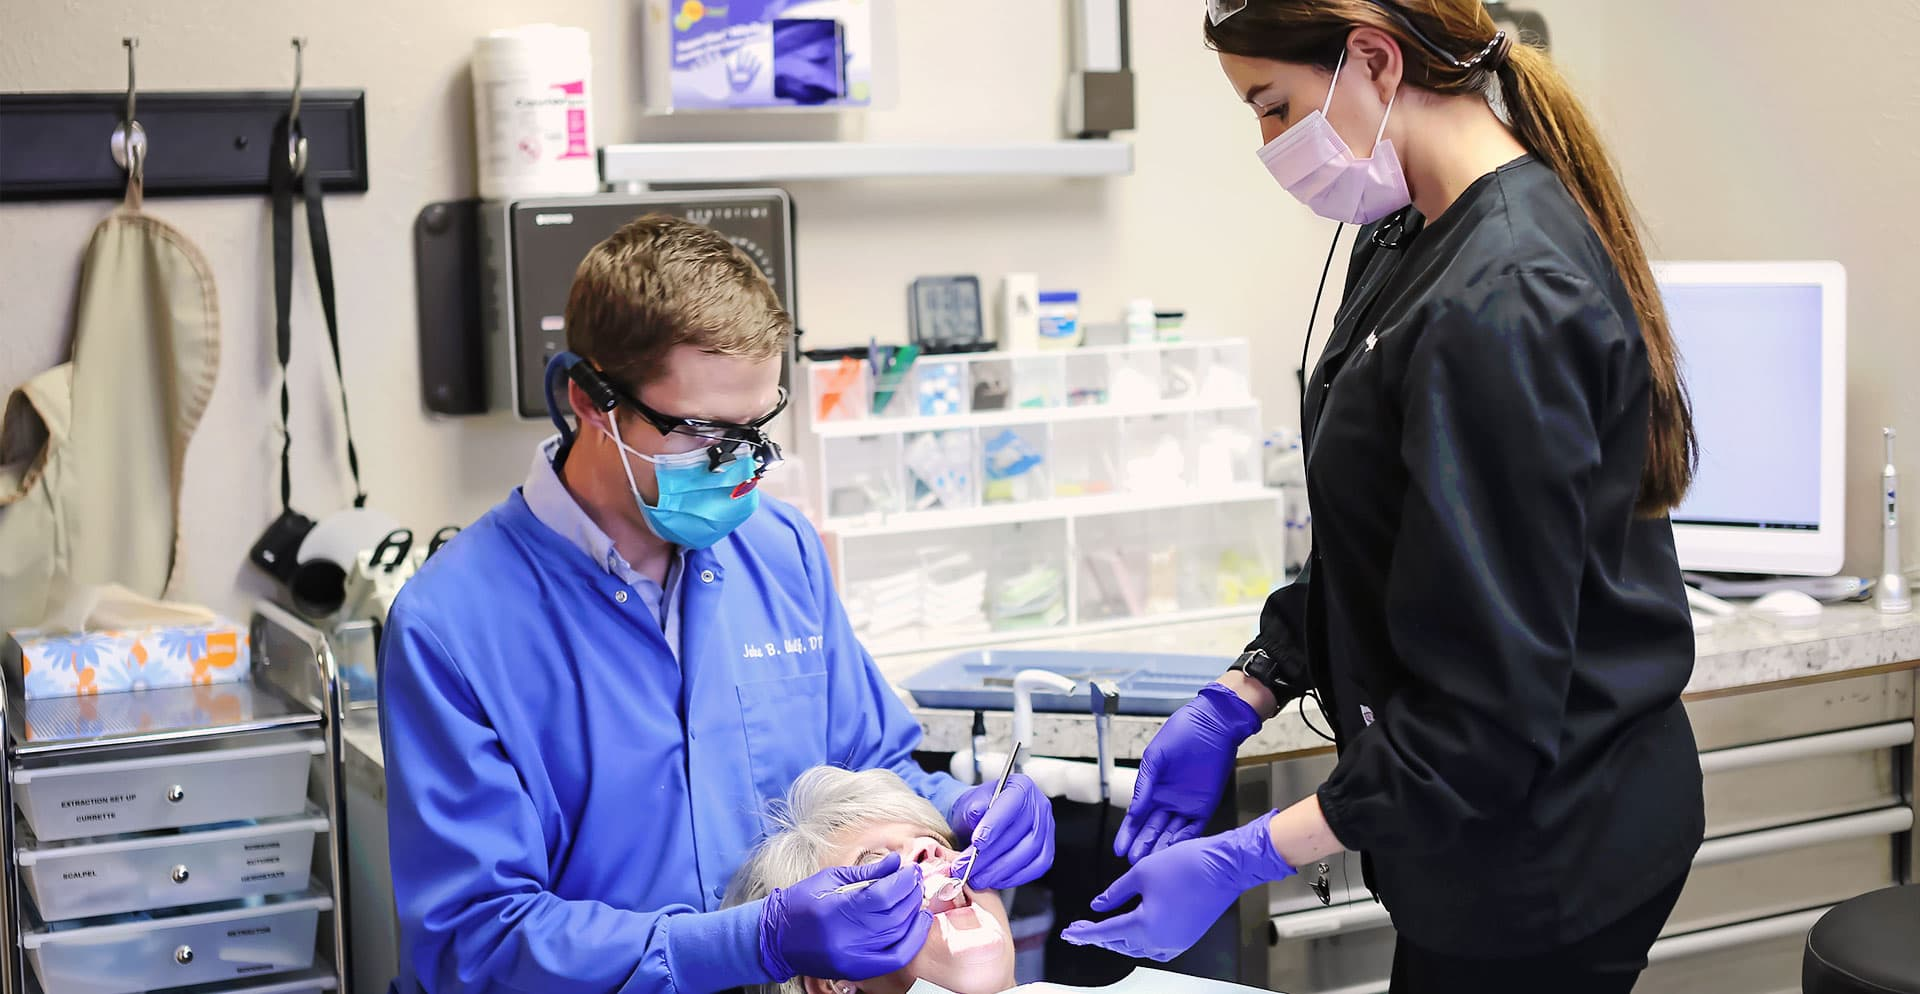 Dr. Jake Wolf - Family Dentist in Las Cruces, New Mexico